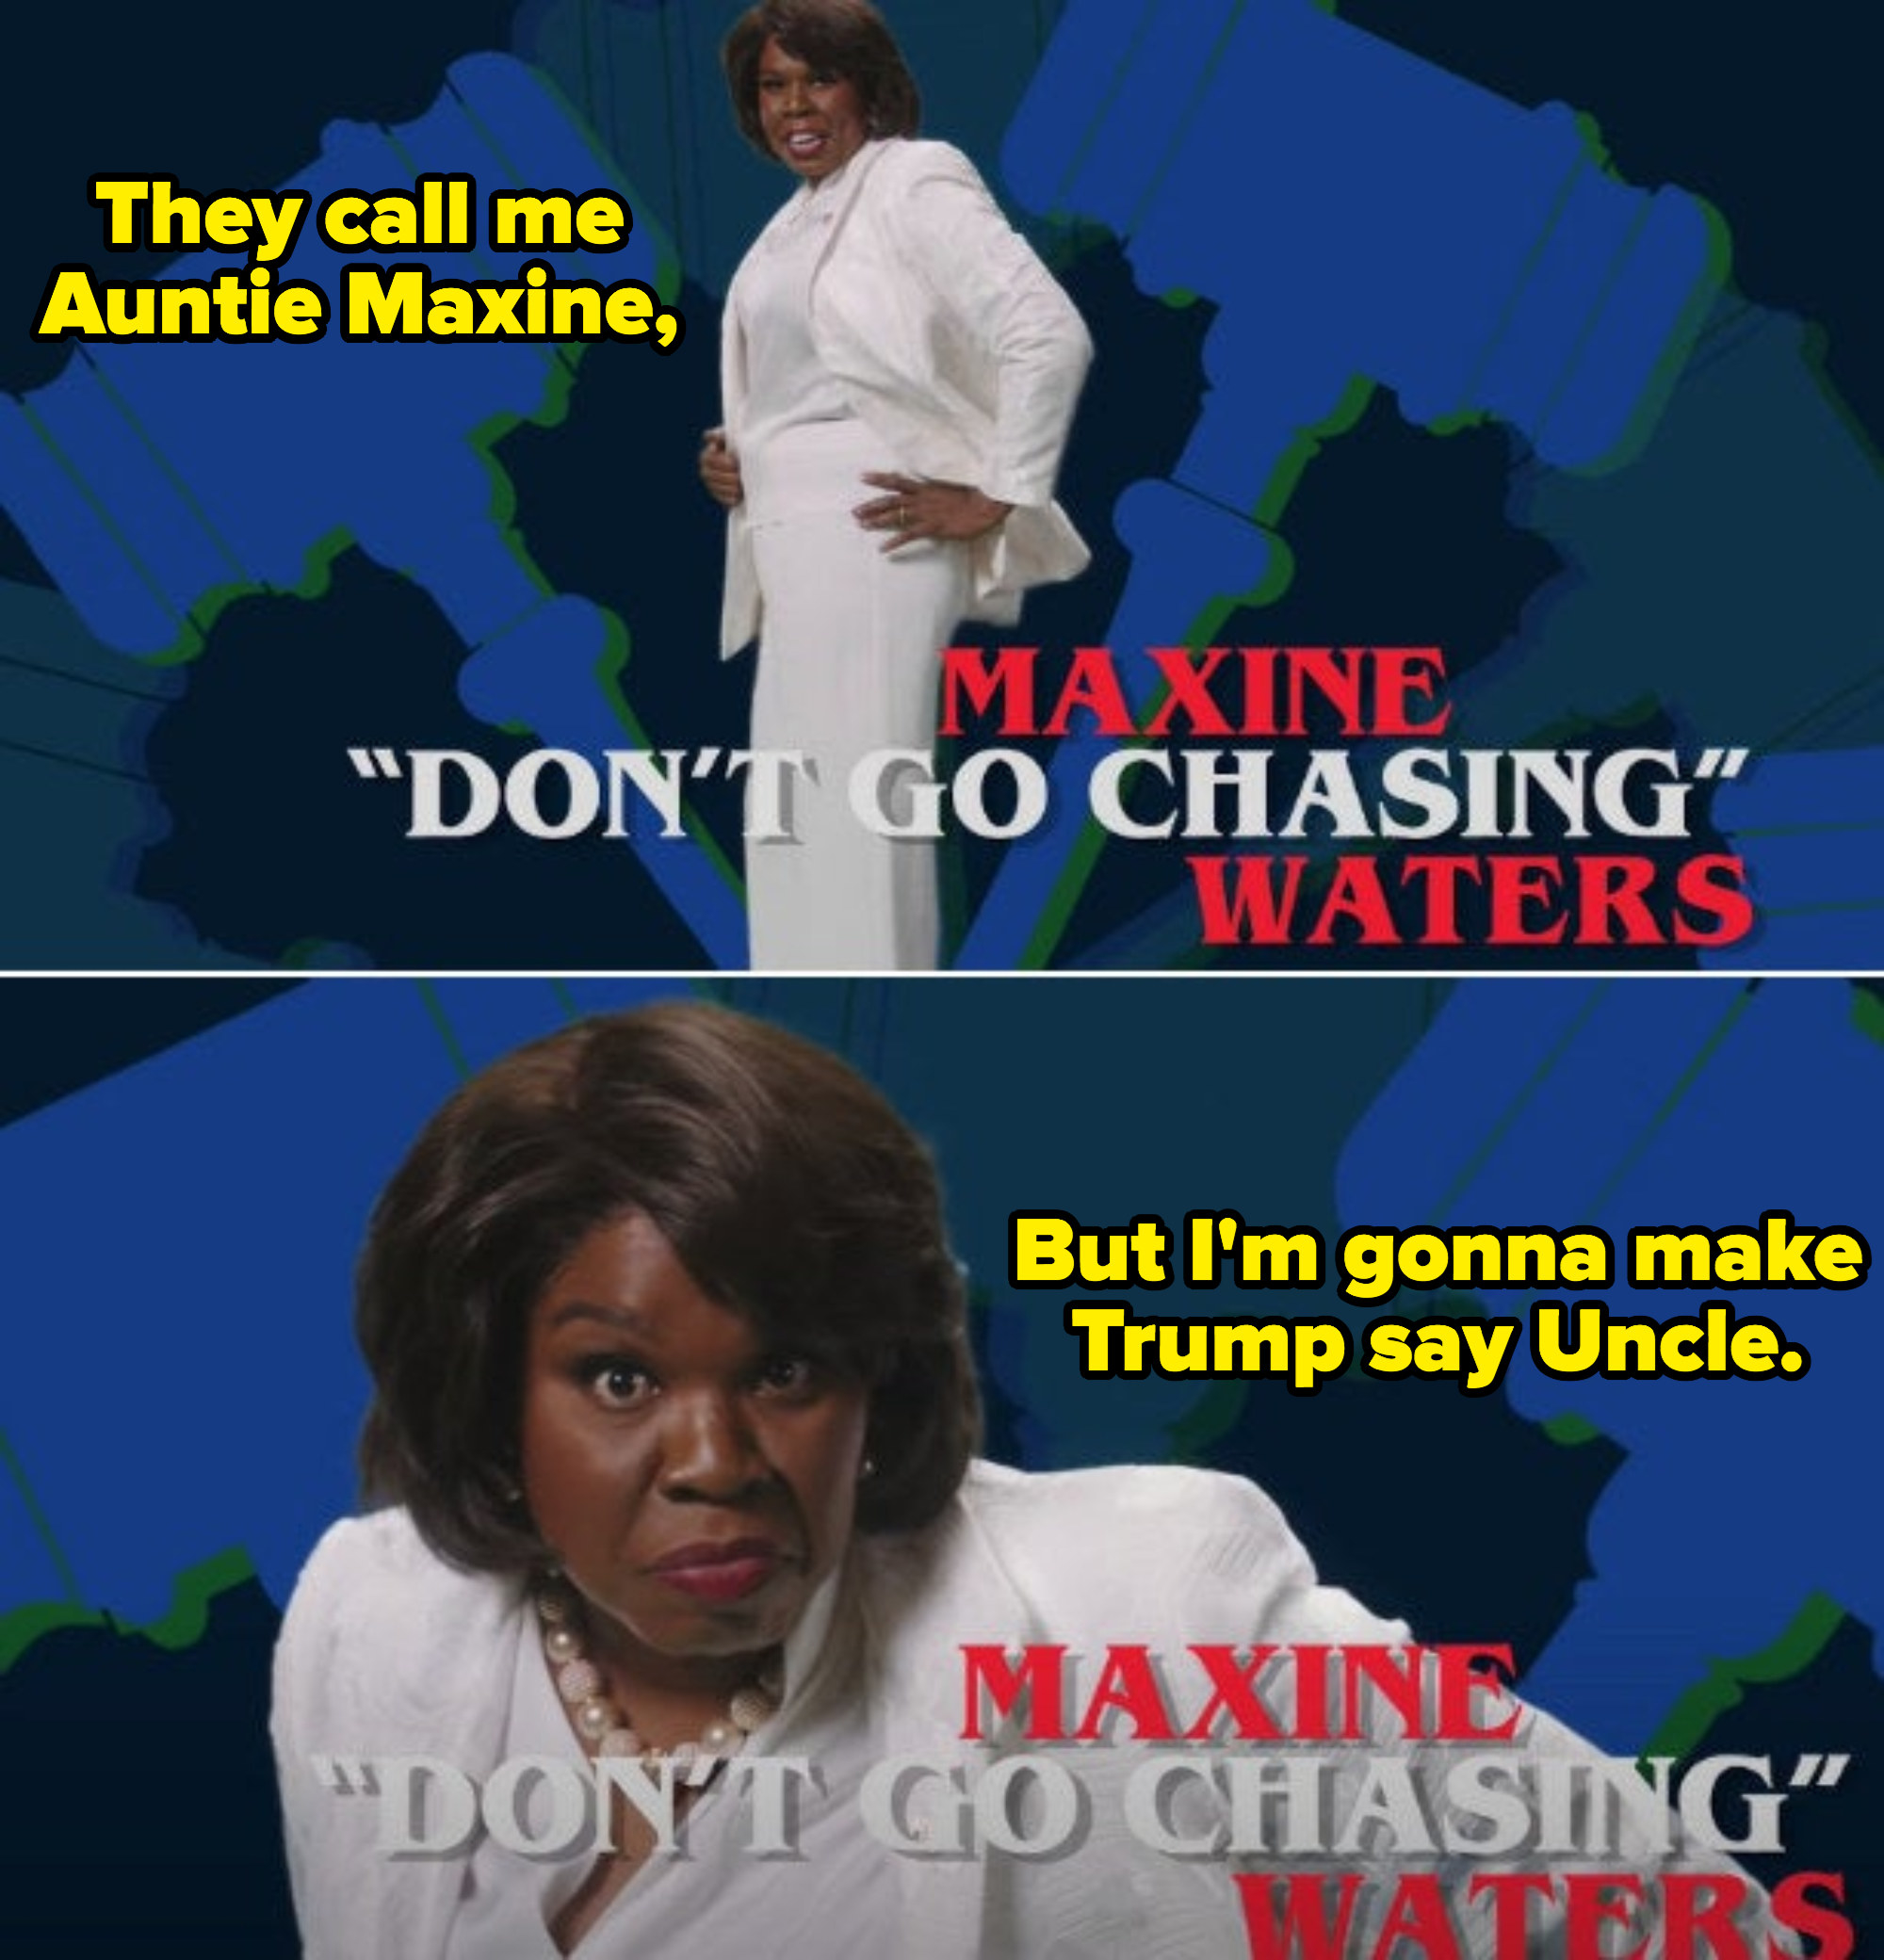 """Leslie Jones as Maxine Waters introducing herself in the """"Women of Congress"""" sketch, telling everyone she's going to make Trump call her Uncle Maxine"""